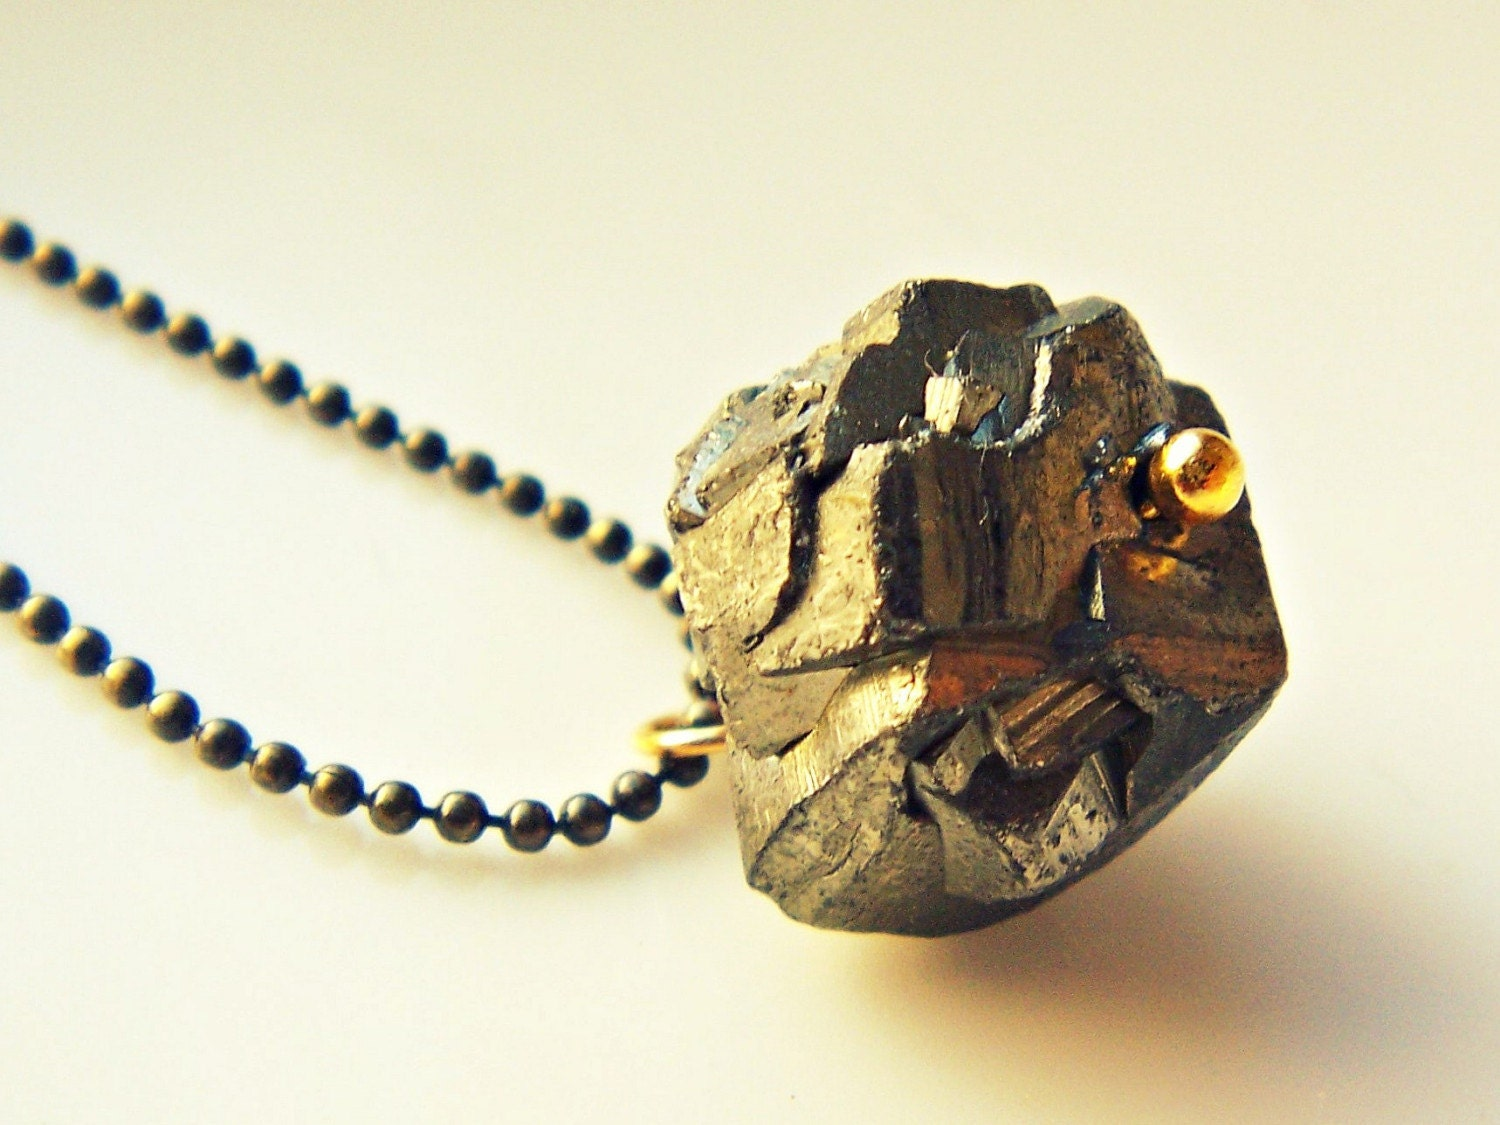 The Rogue Fool's Gold / Pyrite Nugget Necklace by Palomina on Etsy from etsy.com